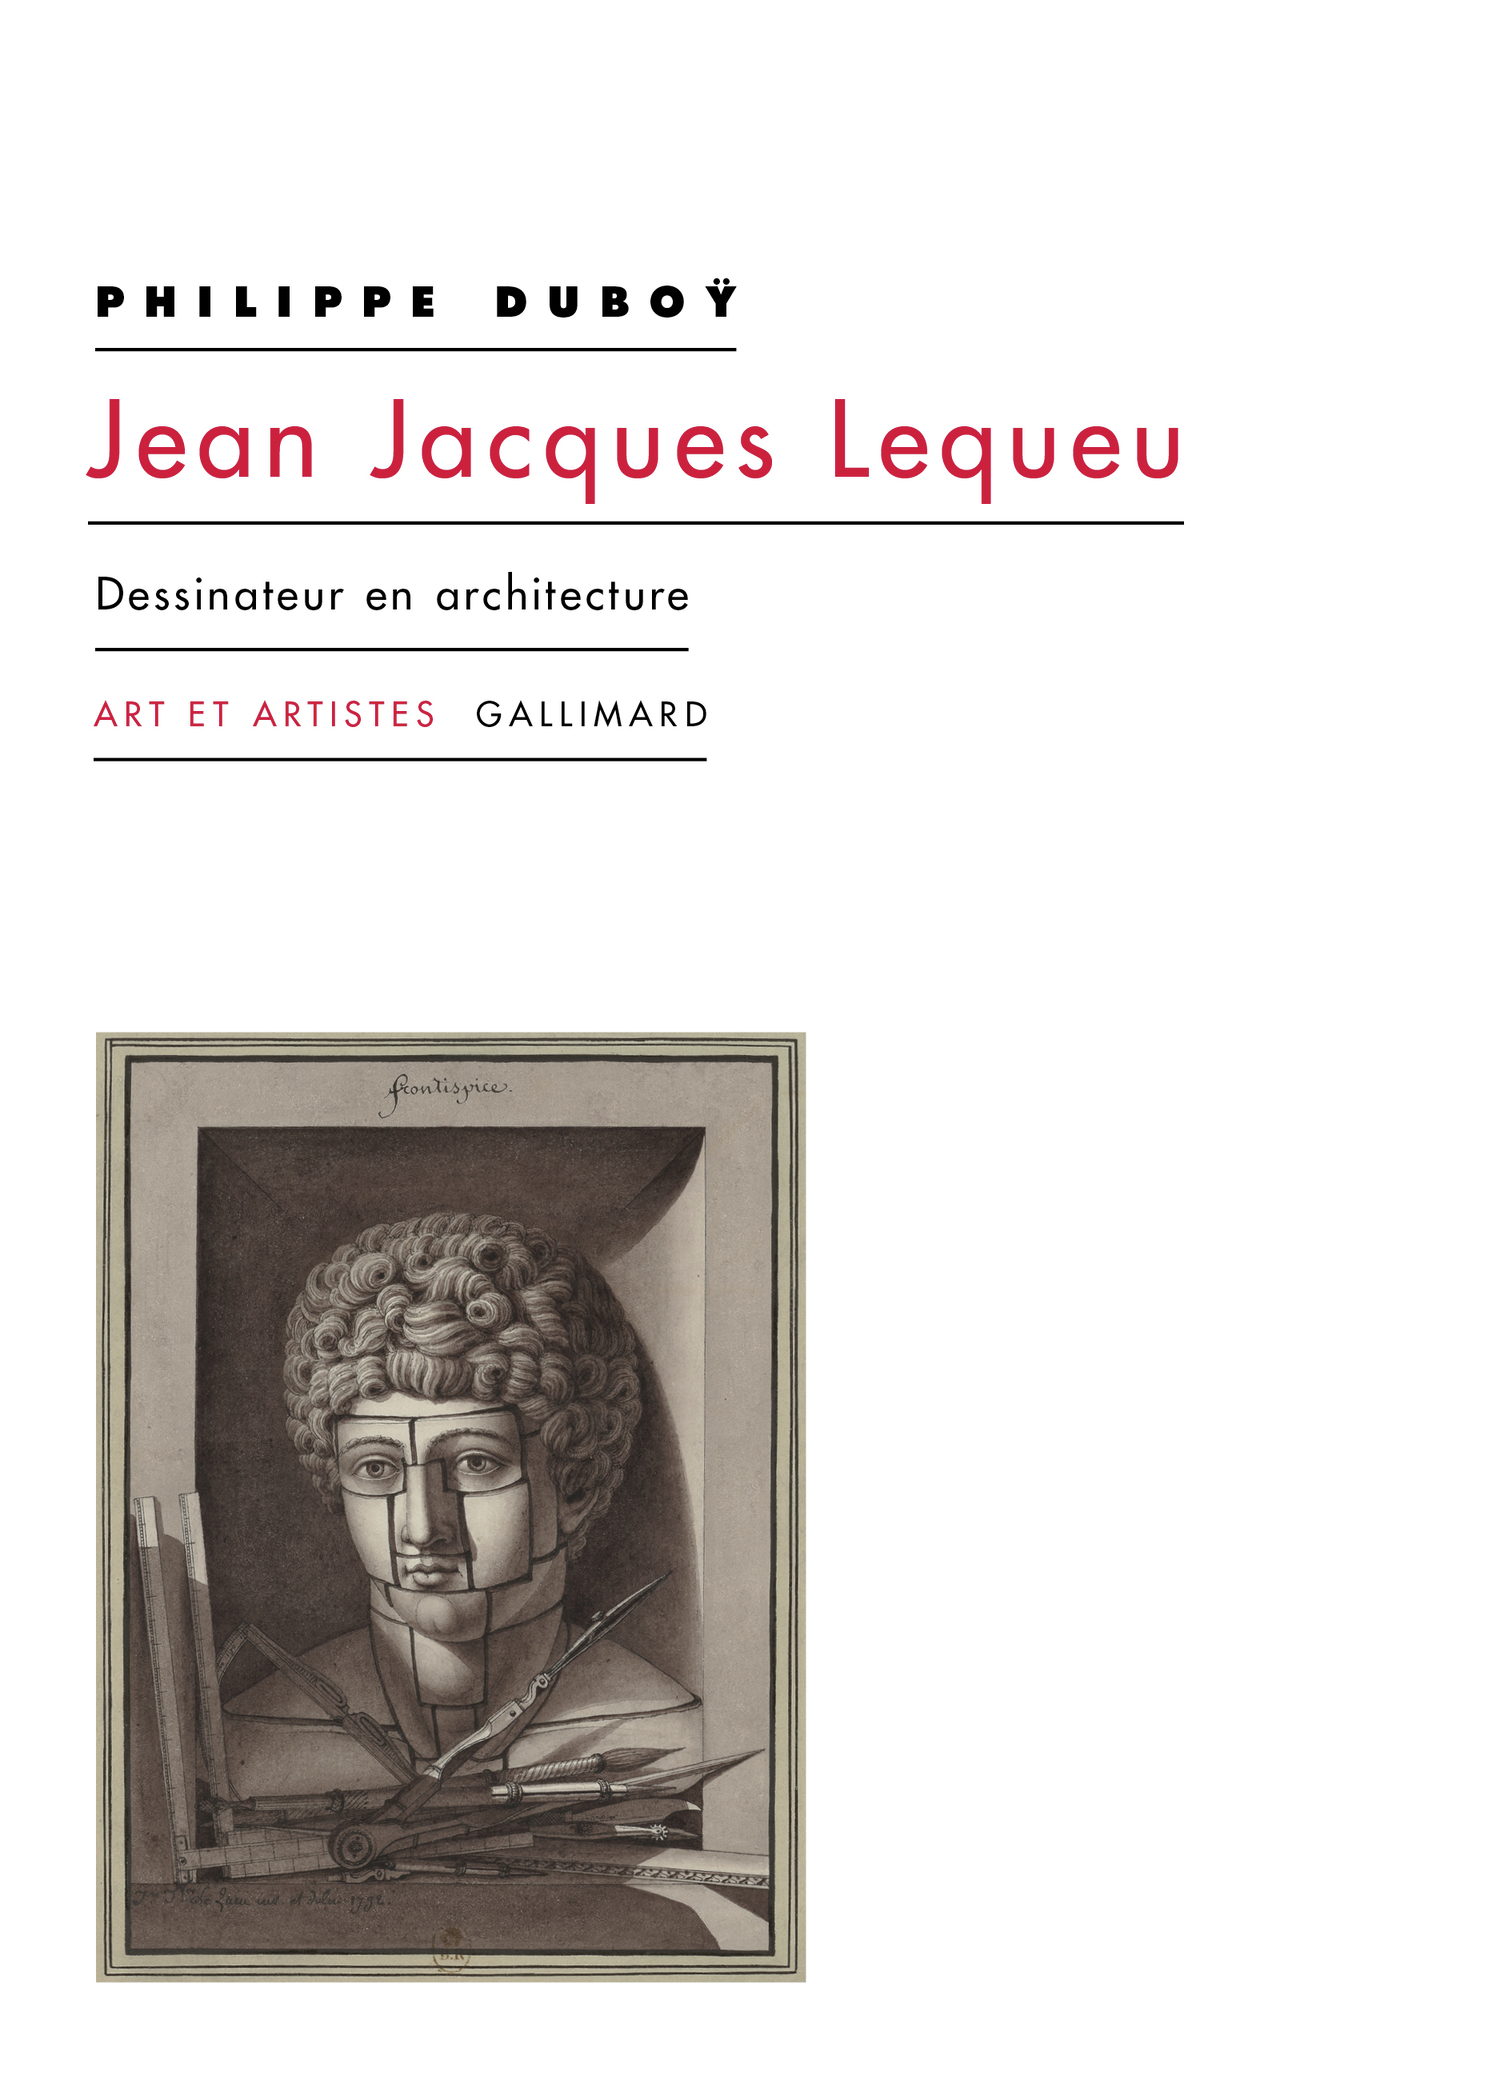 Ph. Duboÿ, Jean Jacques Lequeu. Dessinateur en architecture